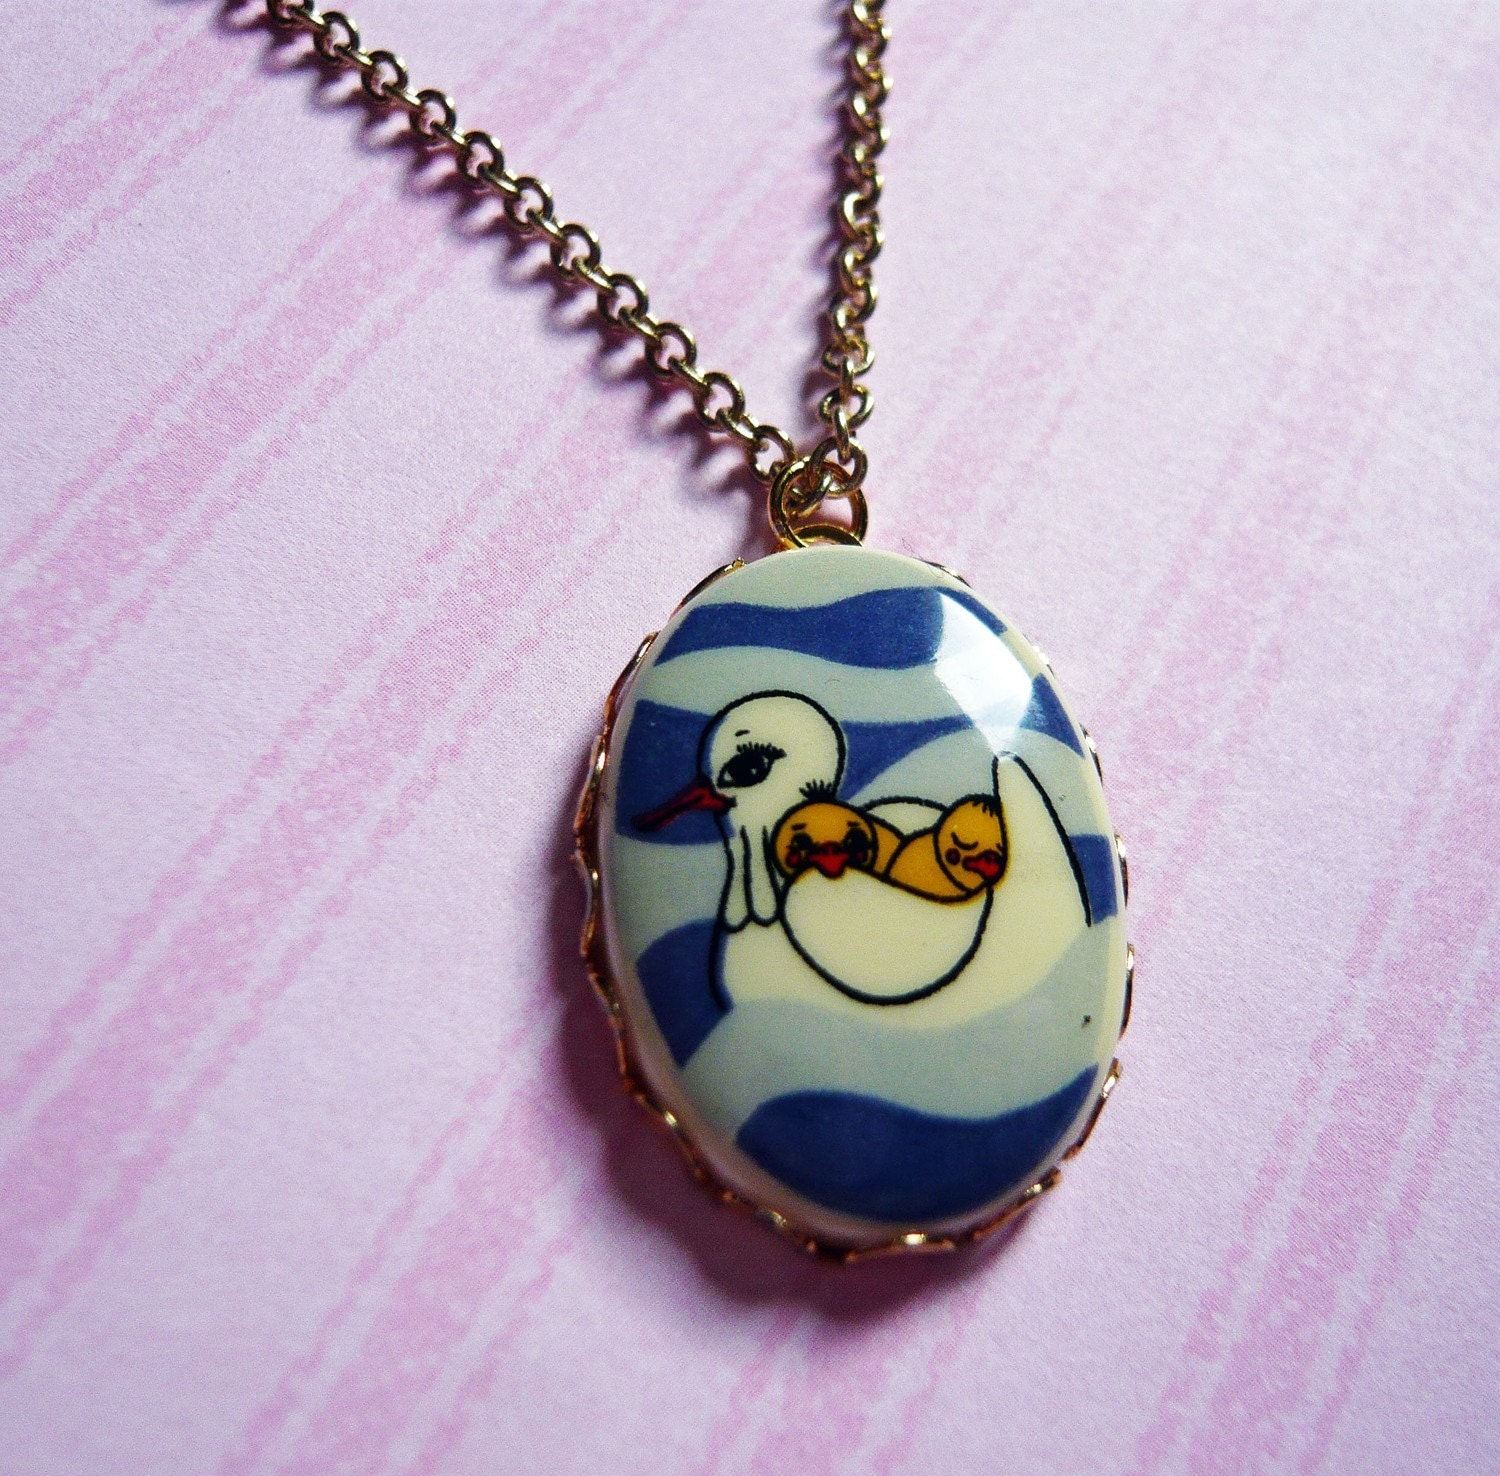 Vintage Mom and Baby Seagull Cameo Necklace by MaruMaru on Etsy from etsy.com